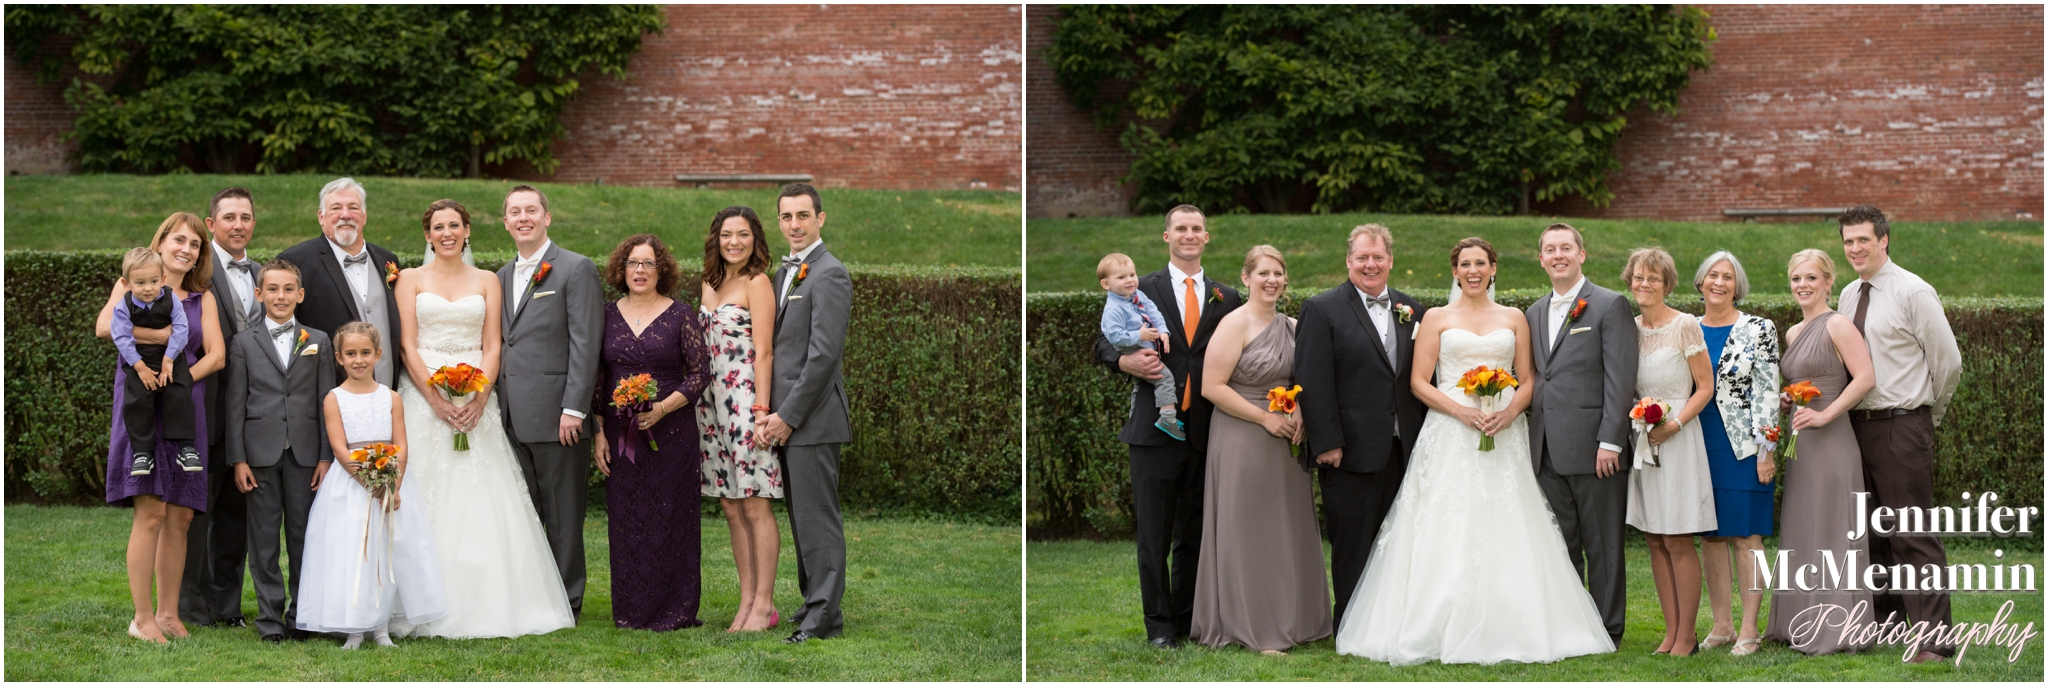 061-HenningMiller_02261-0458_JenniferMcMenaminPhotography_Evergreen-Museum-And-Carriage-House_Evergreen-wedding_Baltimore-wedding-photographer_Baltimore-wedding-photography